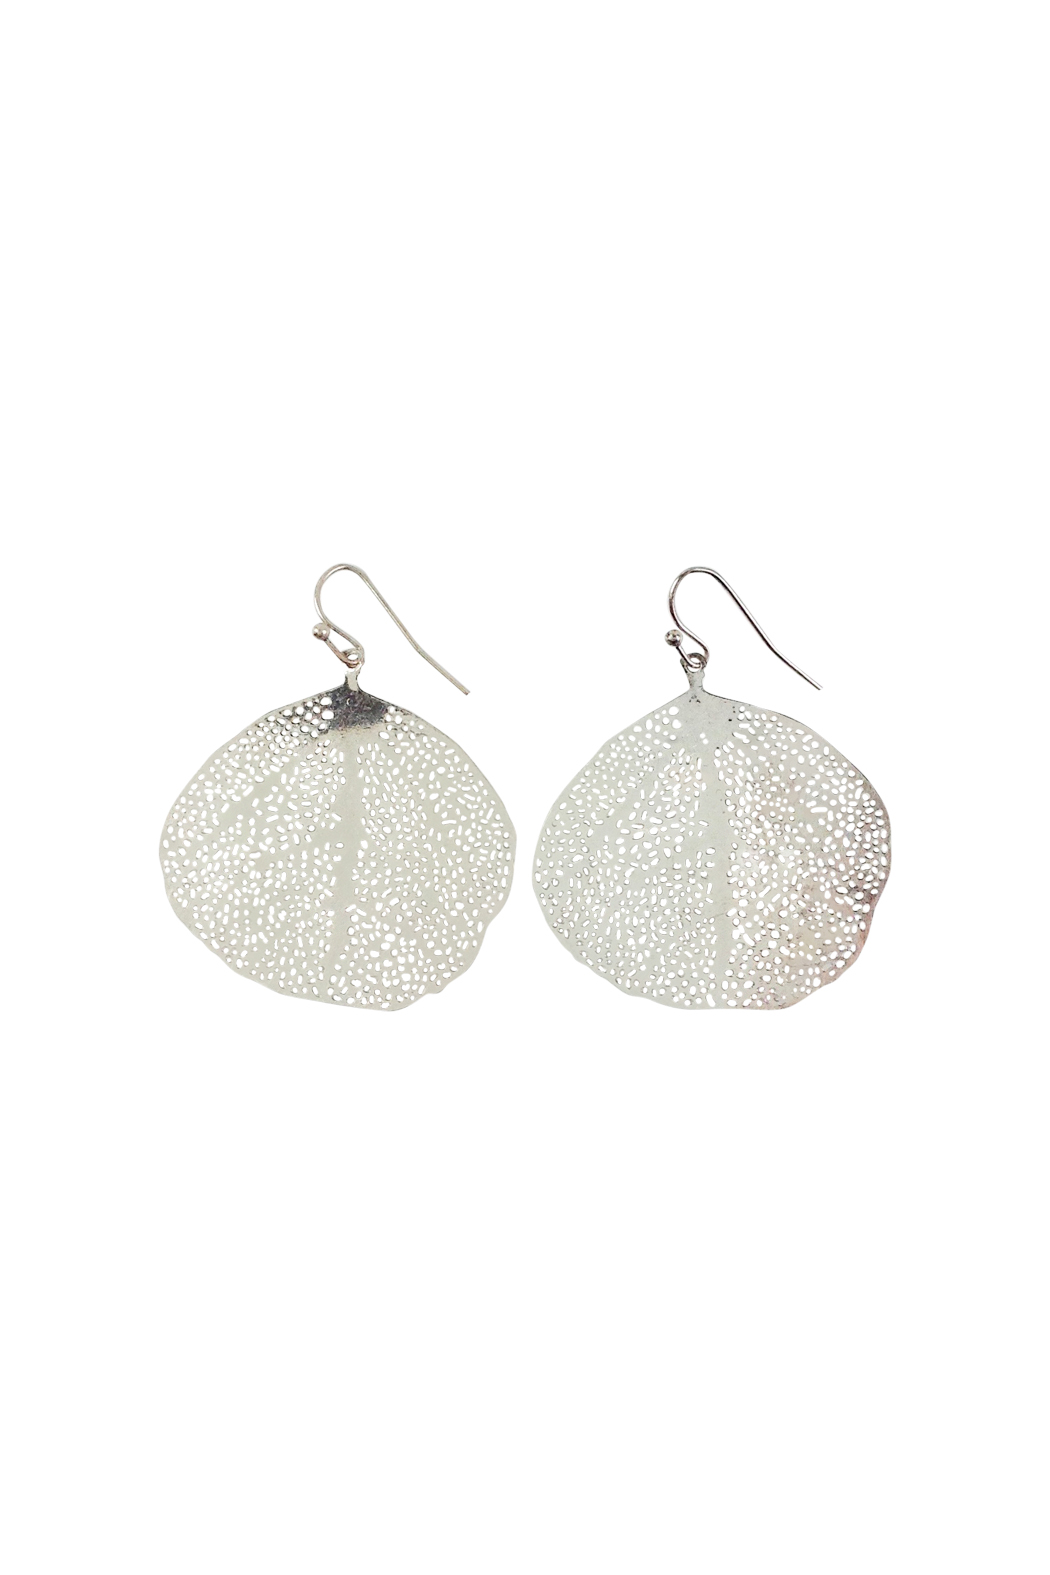 39c4bf0df Silver Filigree Leaf Earrings - Image Of Earring